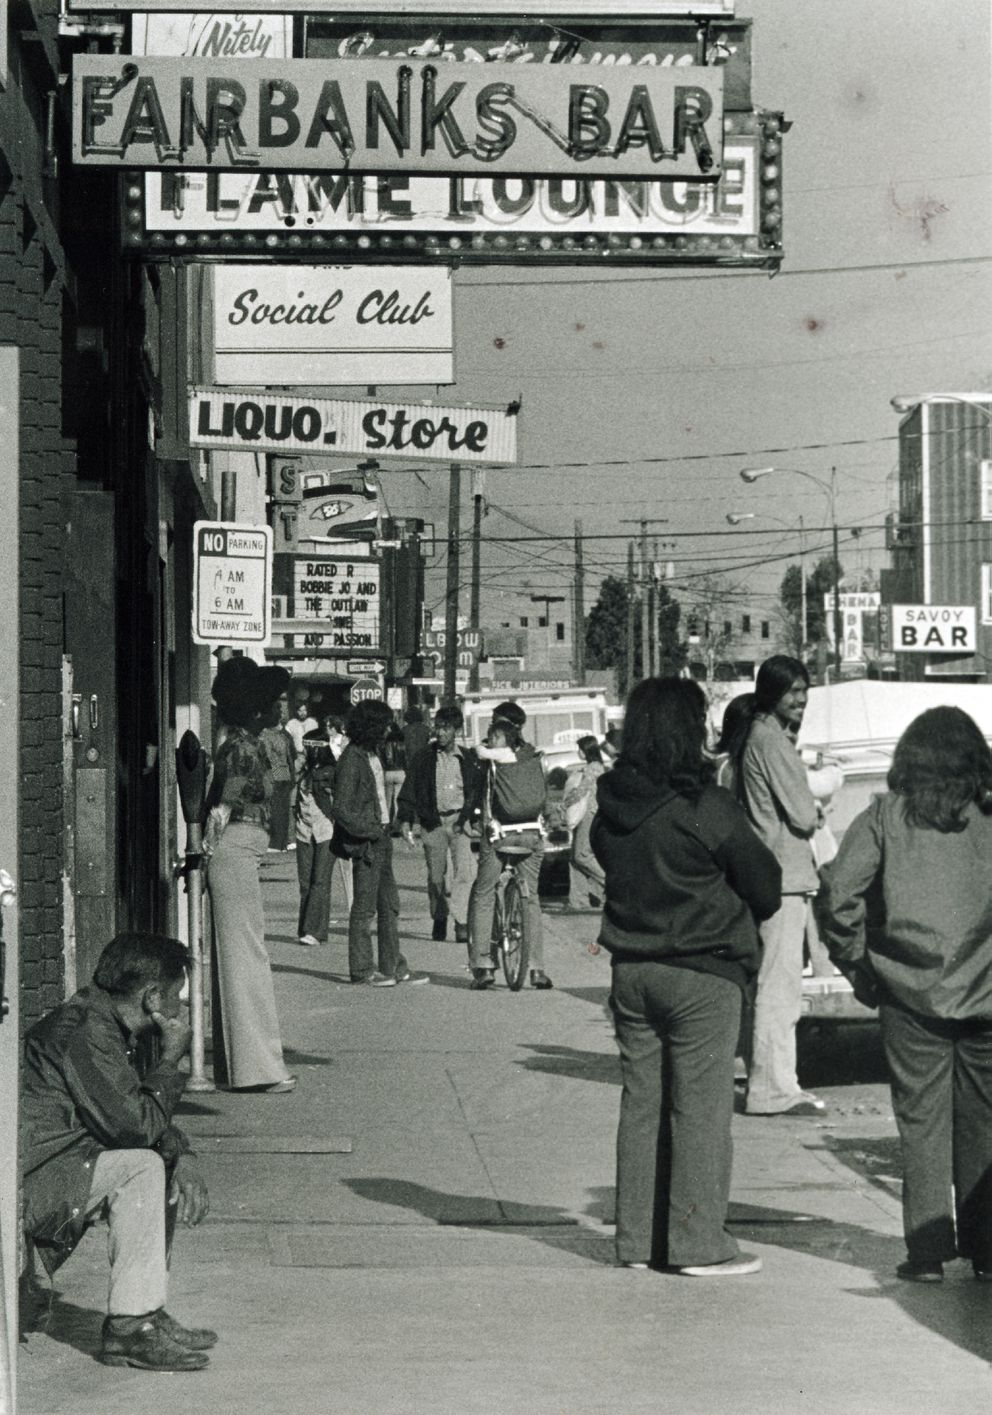 Street scene along Second Avenue in Fairbanks; signs for five bars and a liquor store are visible, including the Fairbanks Bar, Flame Lounge, Social Club, Savoy Bar, and the Chena Bar. (Photo by Paul Helmar / Alaska State Library)